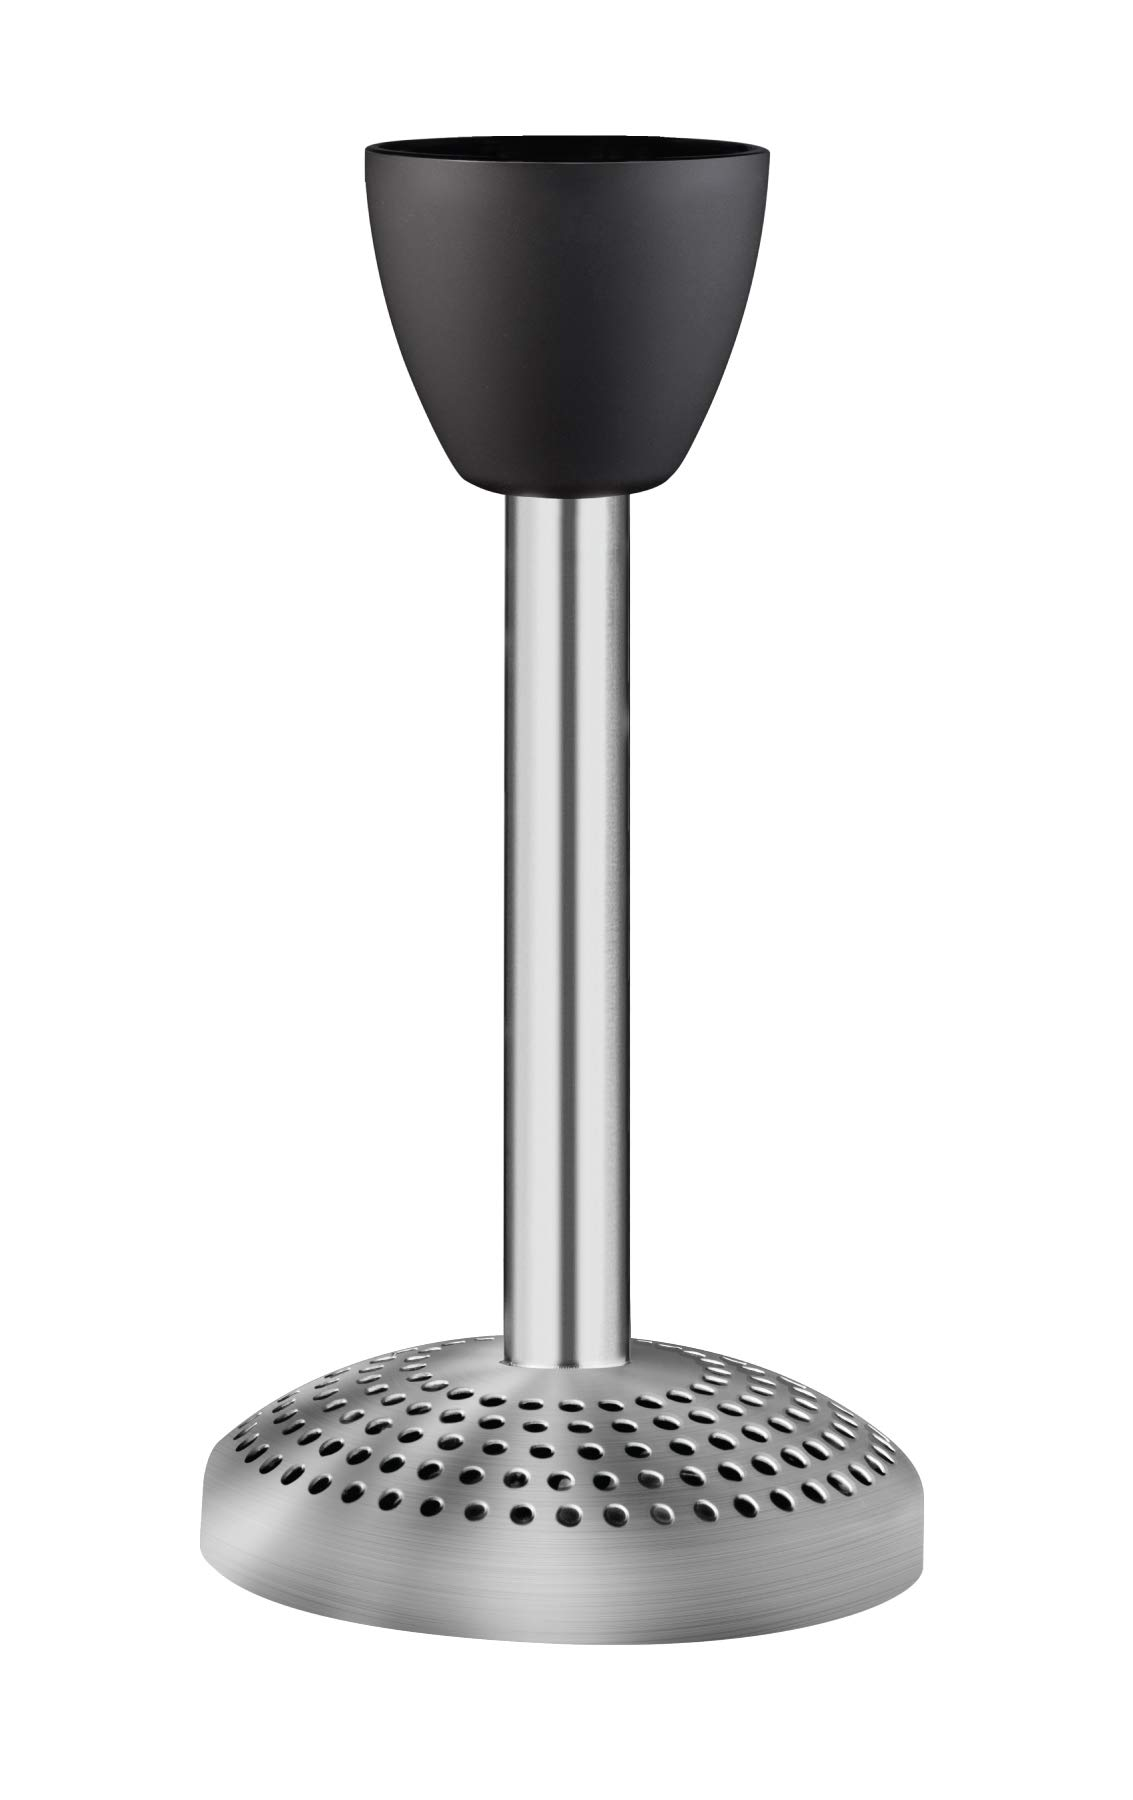 Chefman Electric Immersion Stick Potato Masher Attachment, Compatible with RJ19 Hand Blenders, Purees Fruits and Vegetables, Blends Baby Food, Mashes Potatoes, Stainless Steel, FDA Approved Materials by Chefman